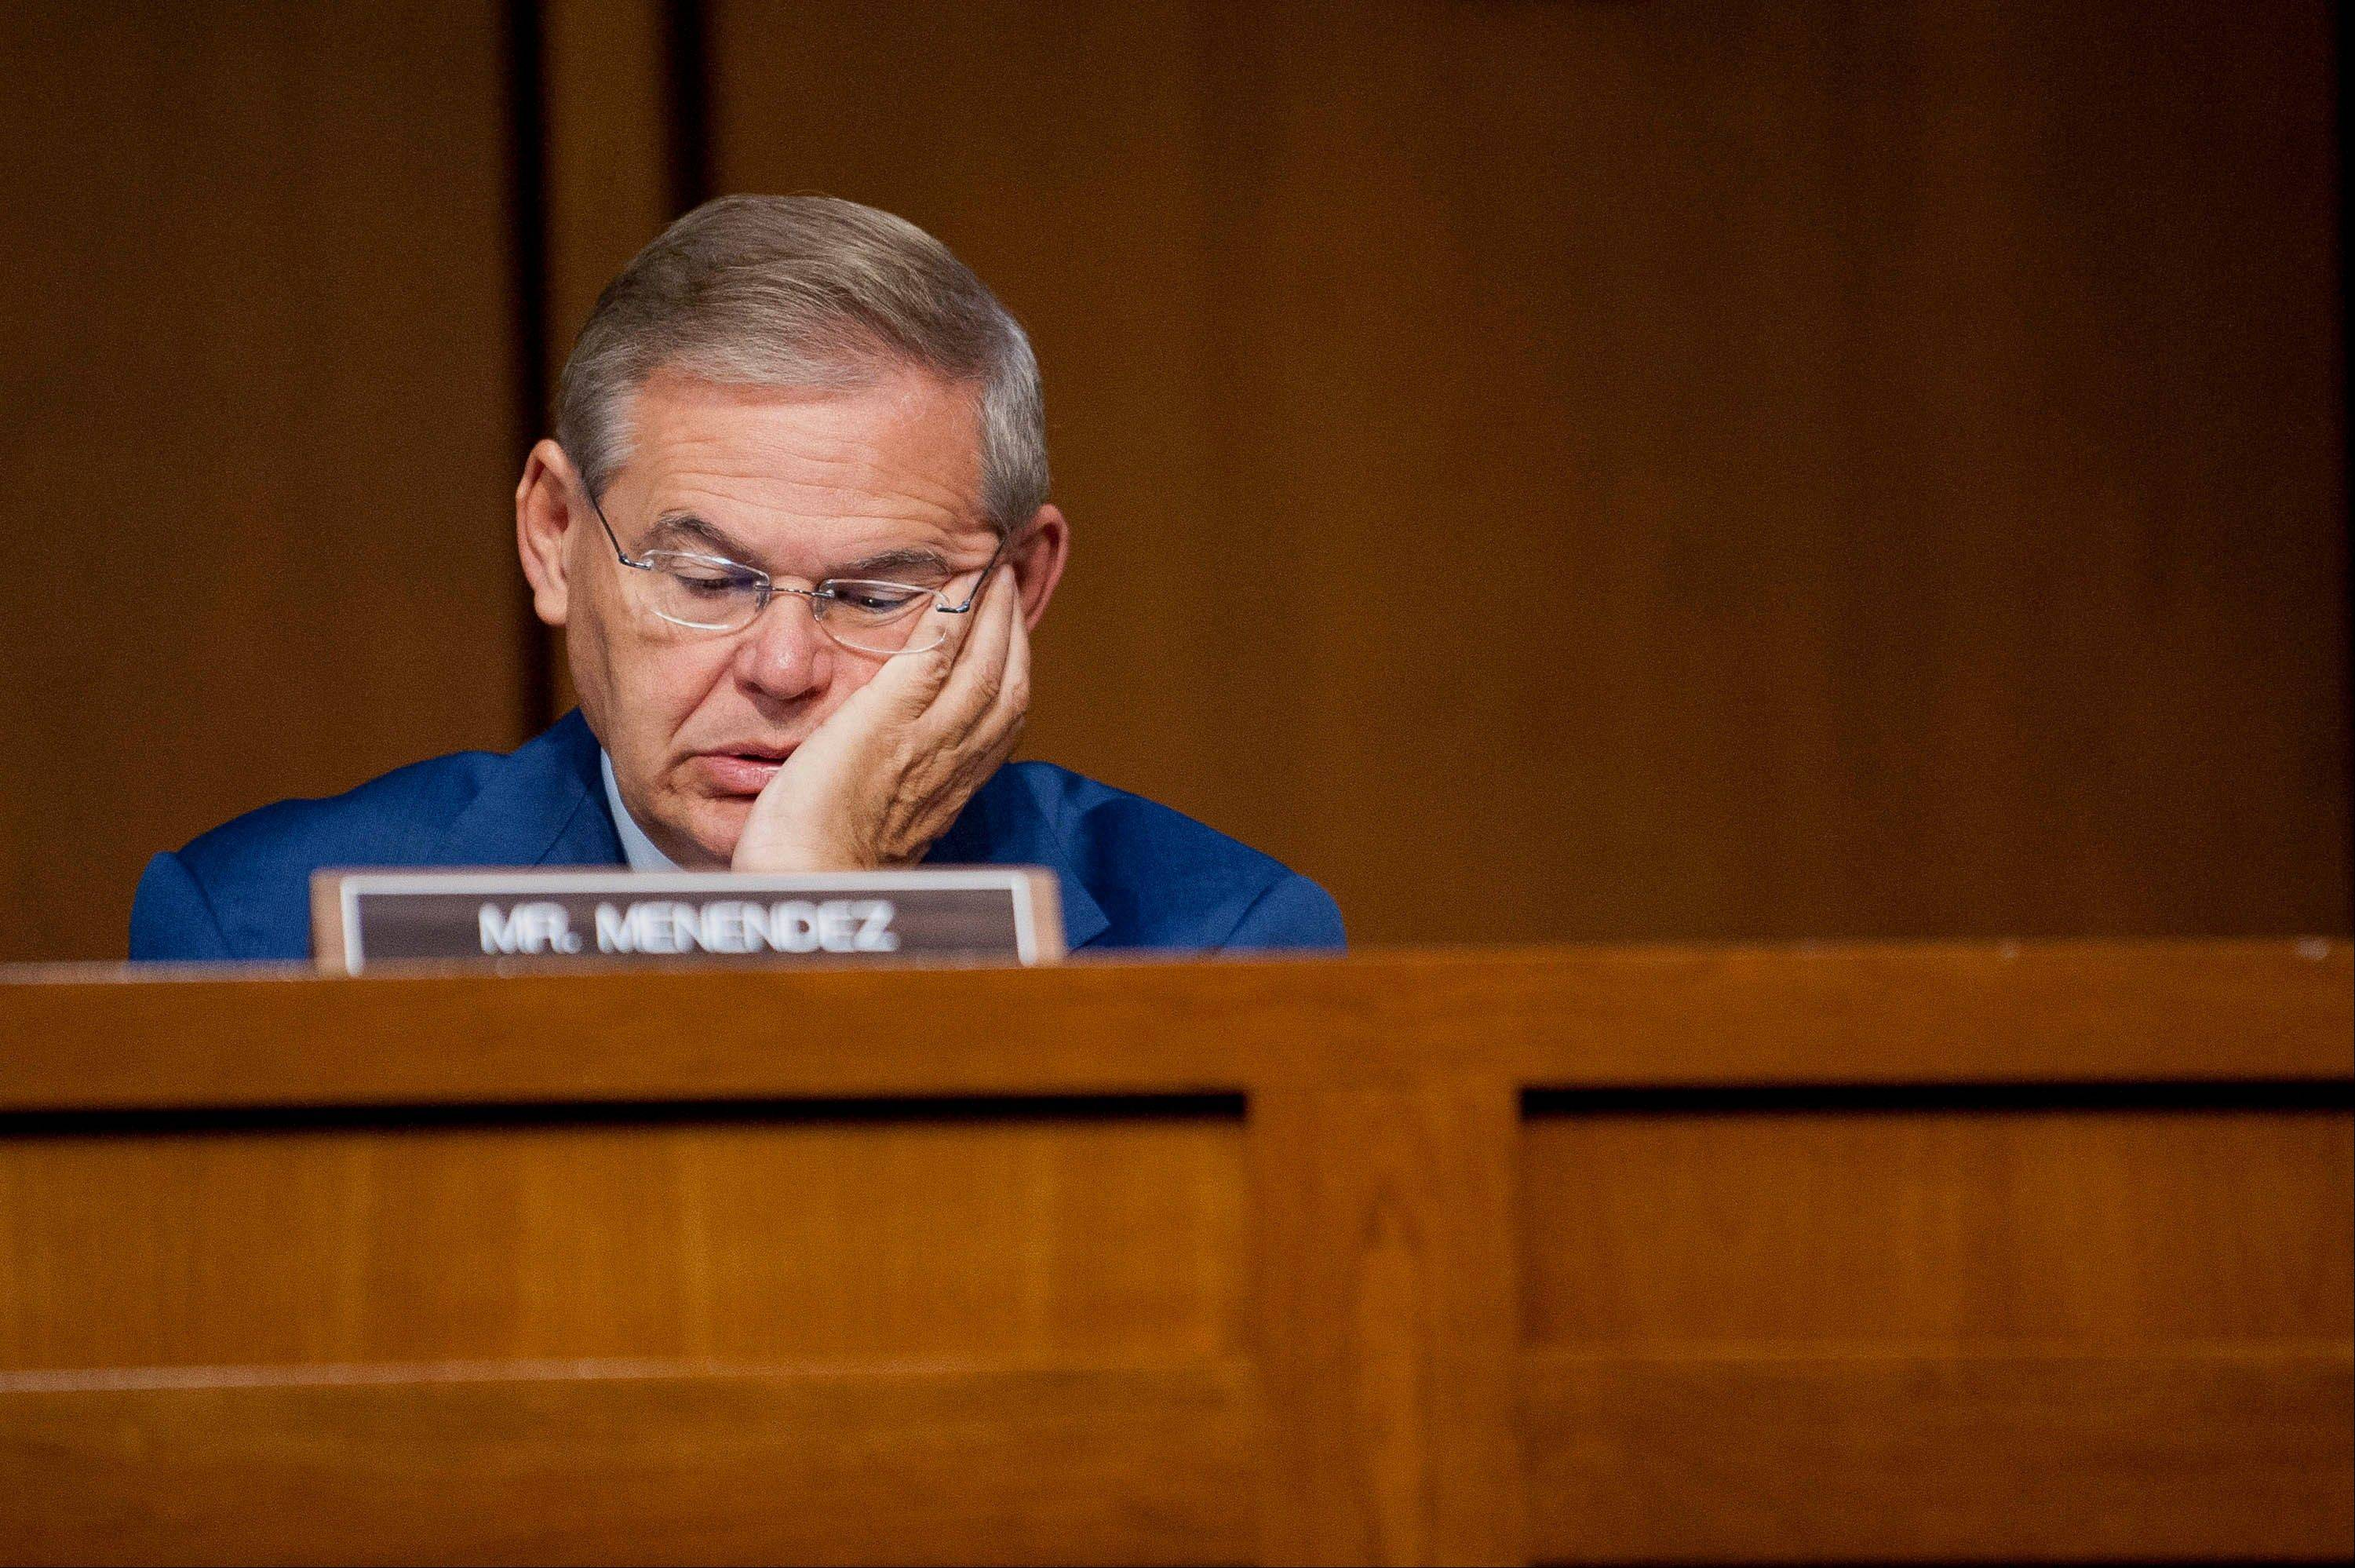 Senator Robert Menendez, a Democrat from New Jersey, listens to testimony during a Senate Finance Committee hearing last fall. Congress suspended the debt limit in October as part of a deal to reopen the government after a partial shutdown. But the suspension ends on Friday.